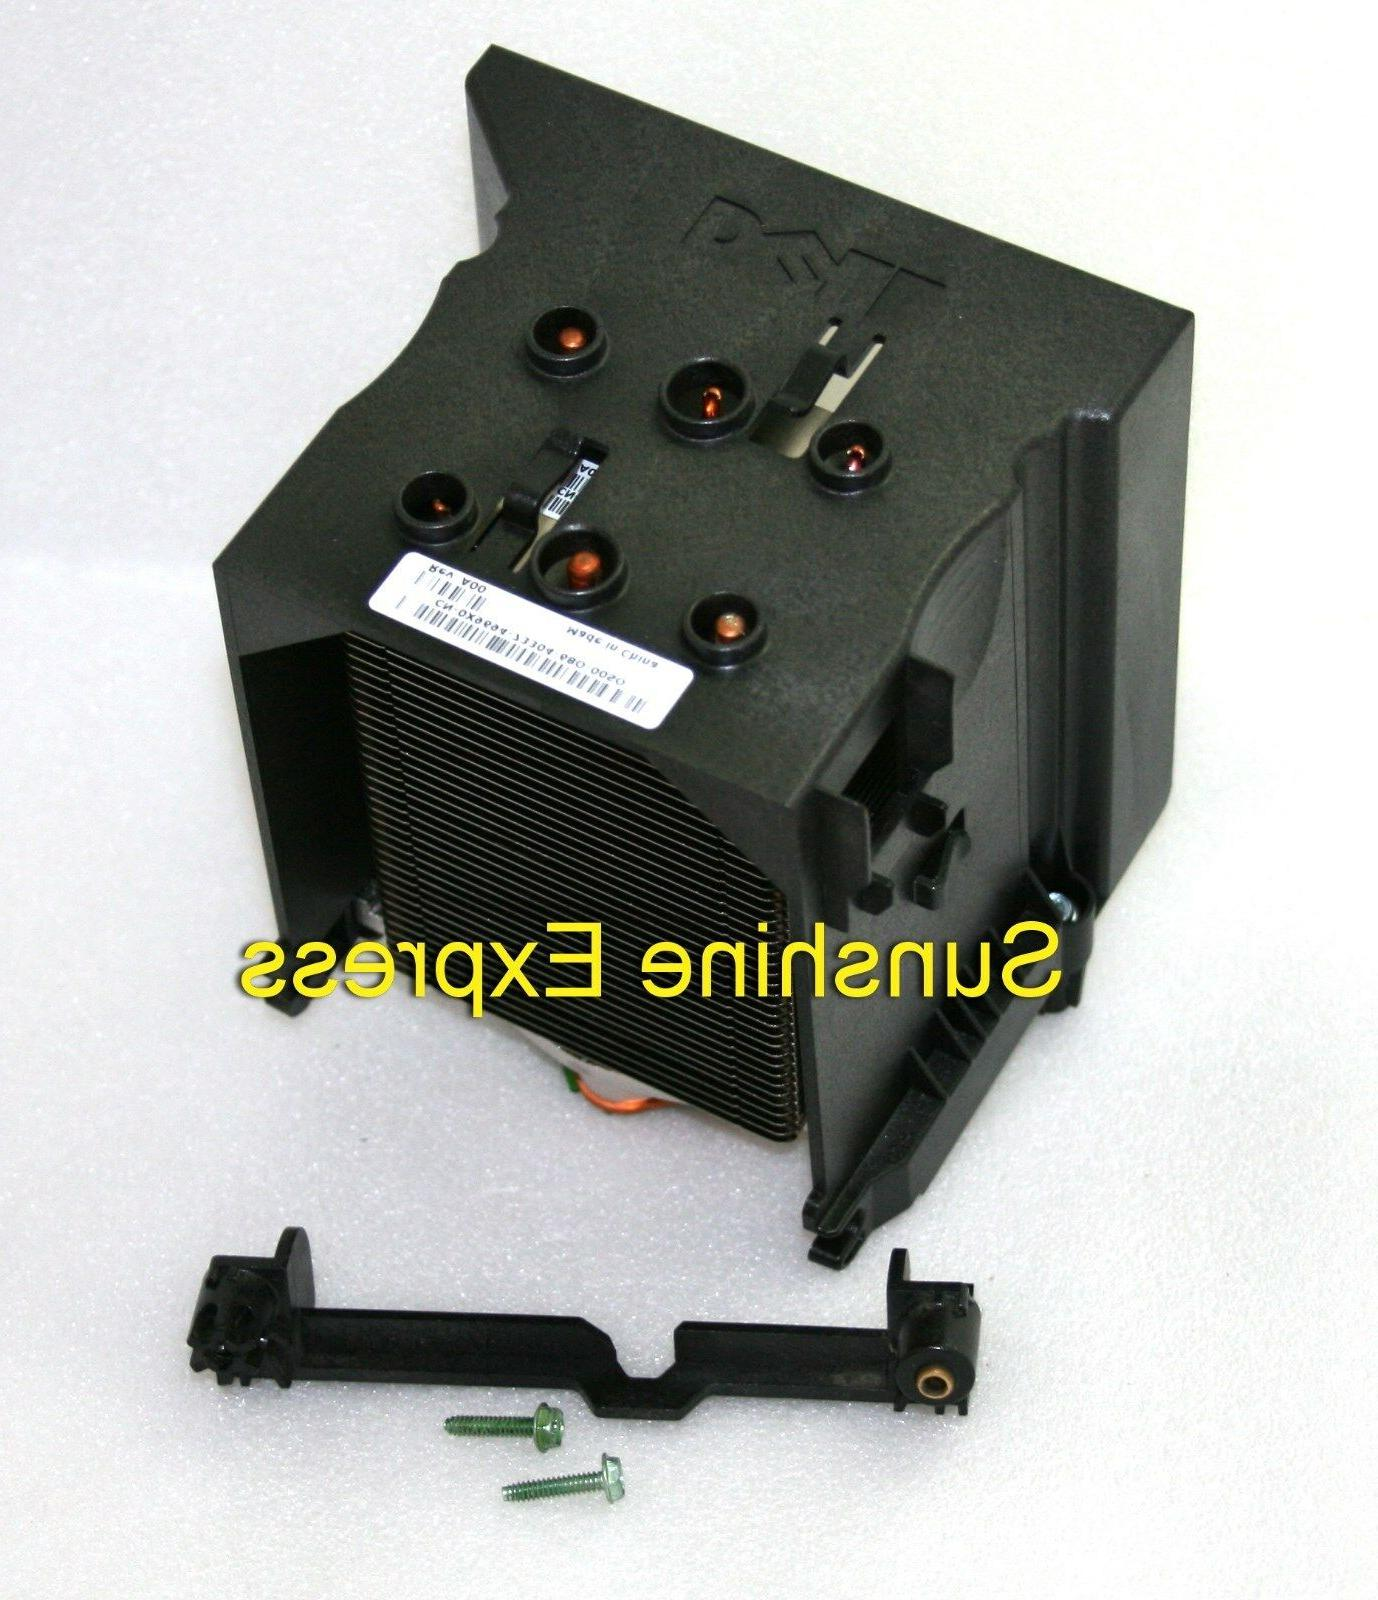 New OEM Dell X9694 CPU Bracket Dell XPS 400 410